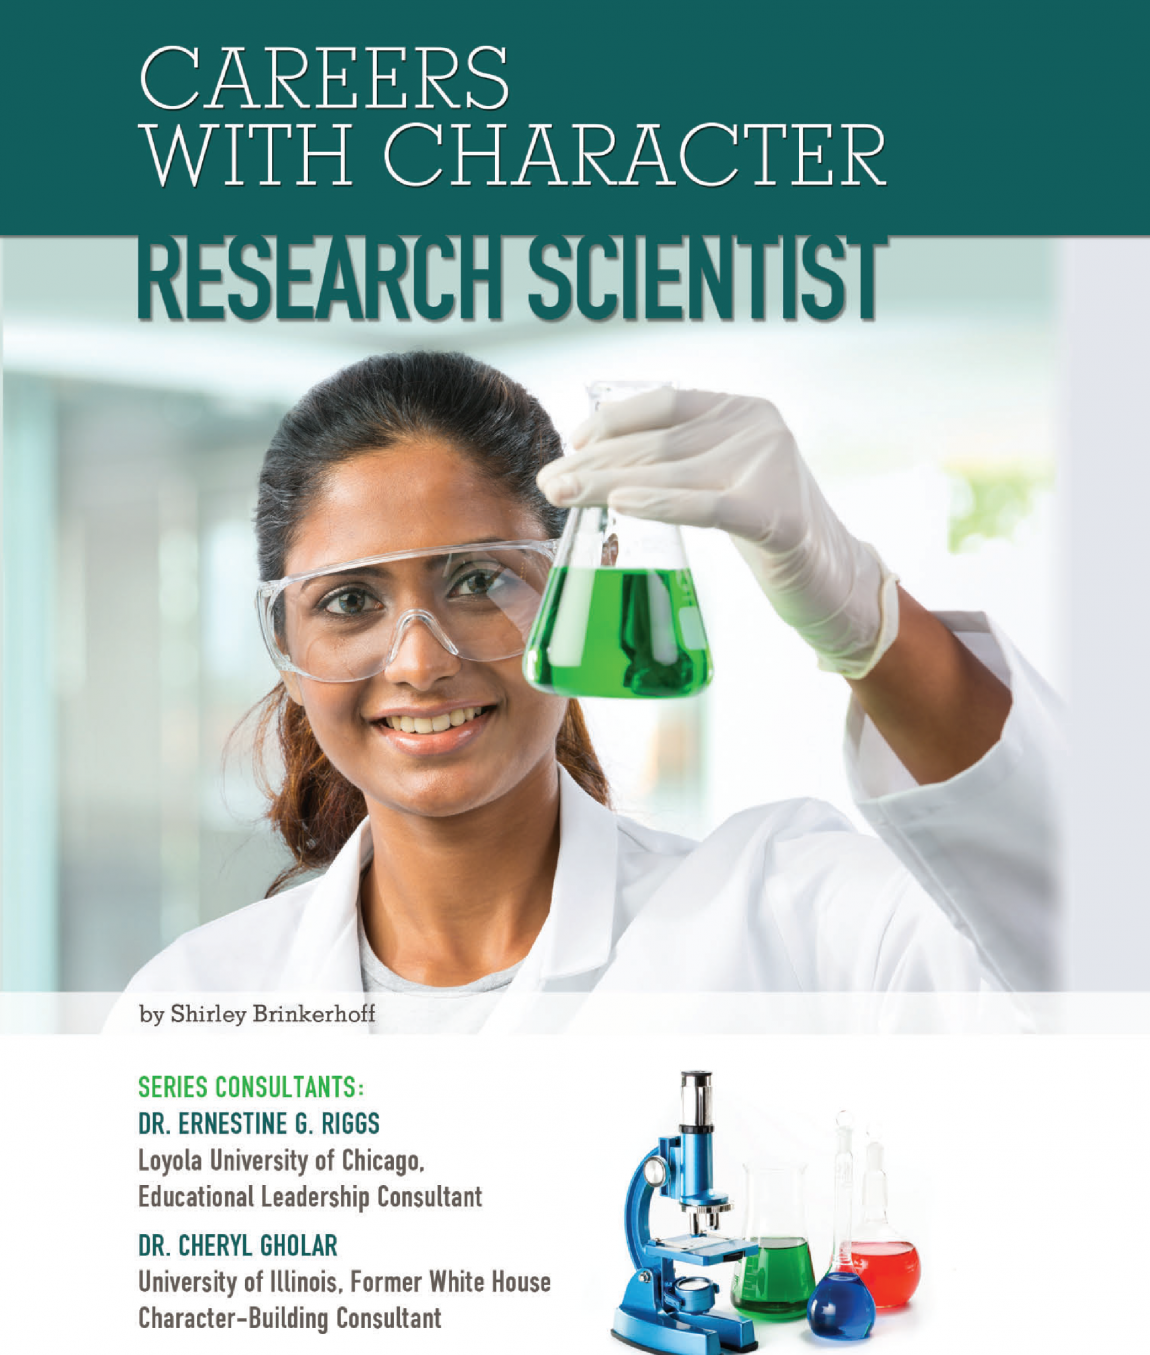 research-scientist-01.png